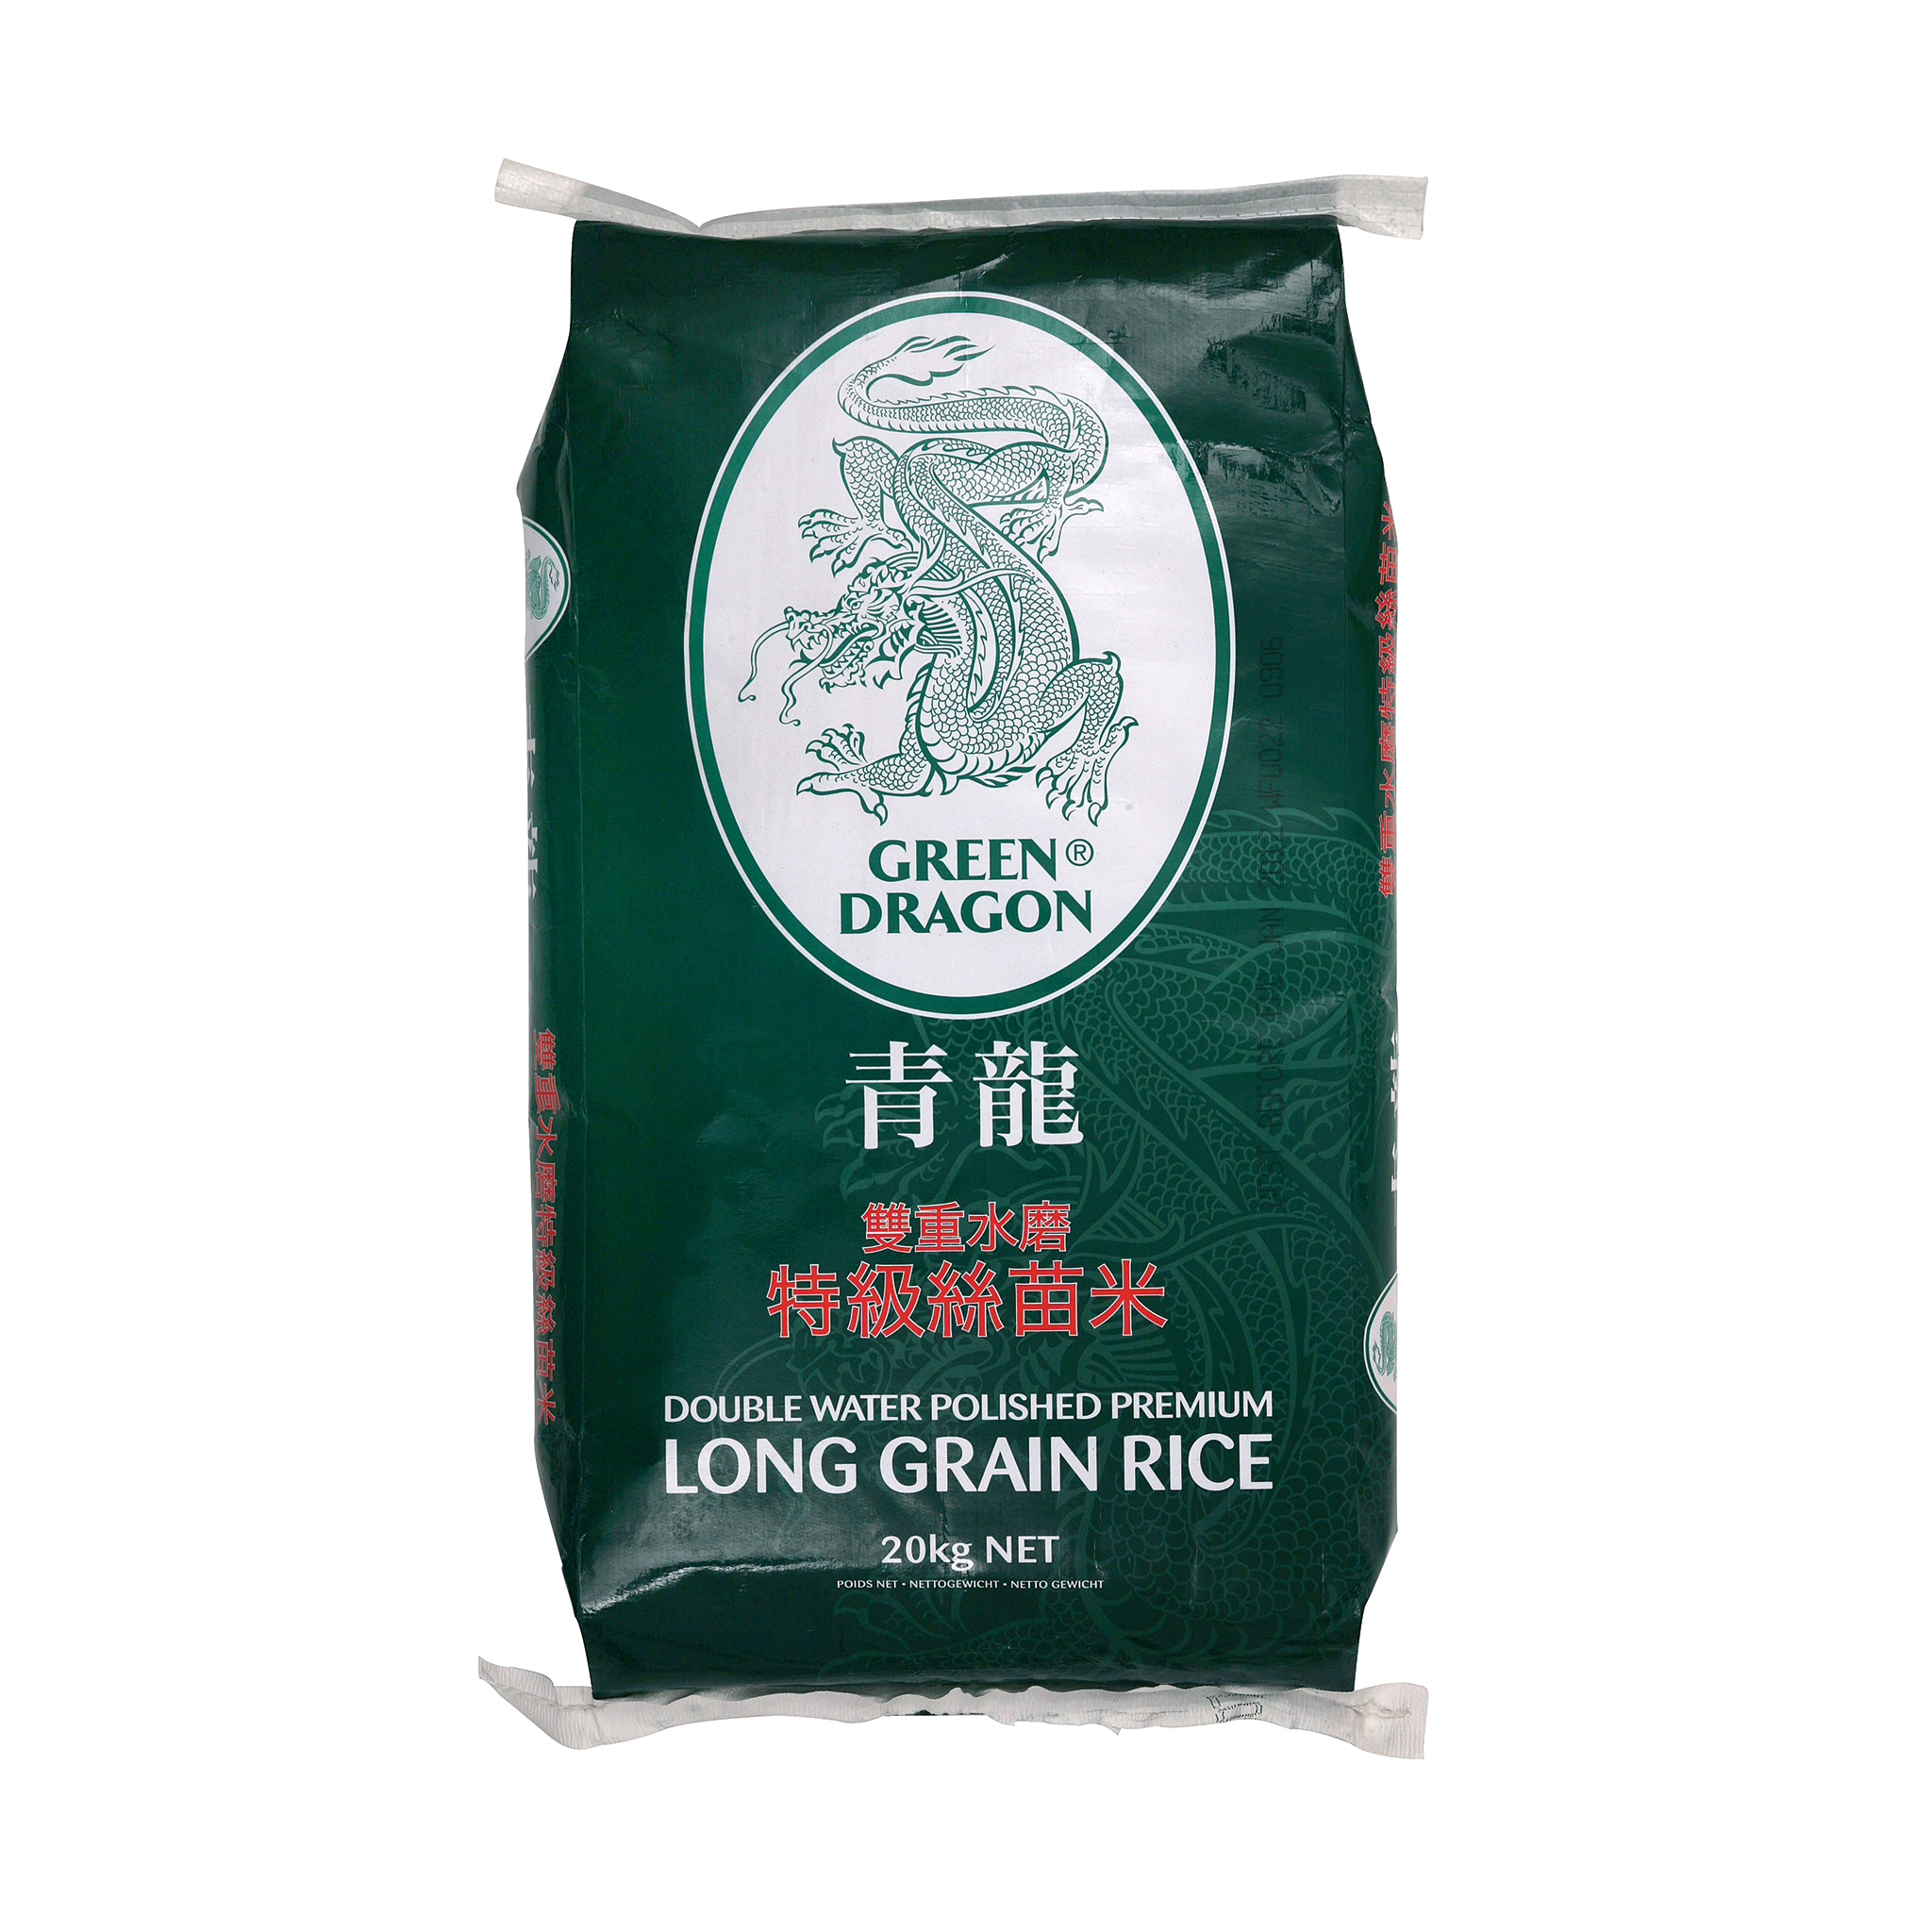 Premium Long Grain Rice 20kg by Green Dragon